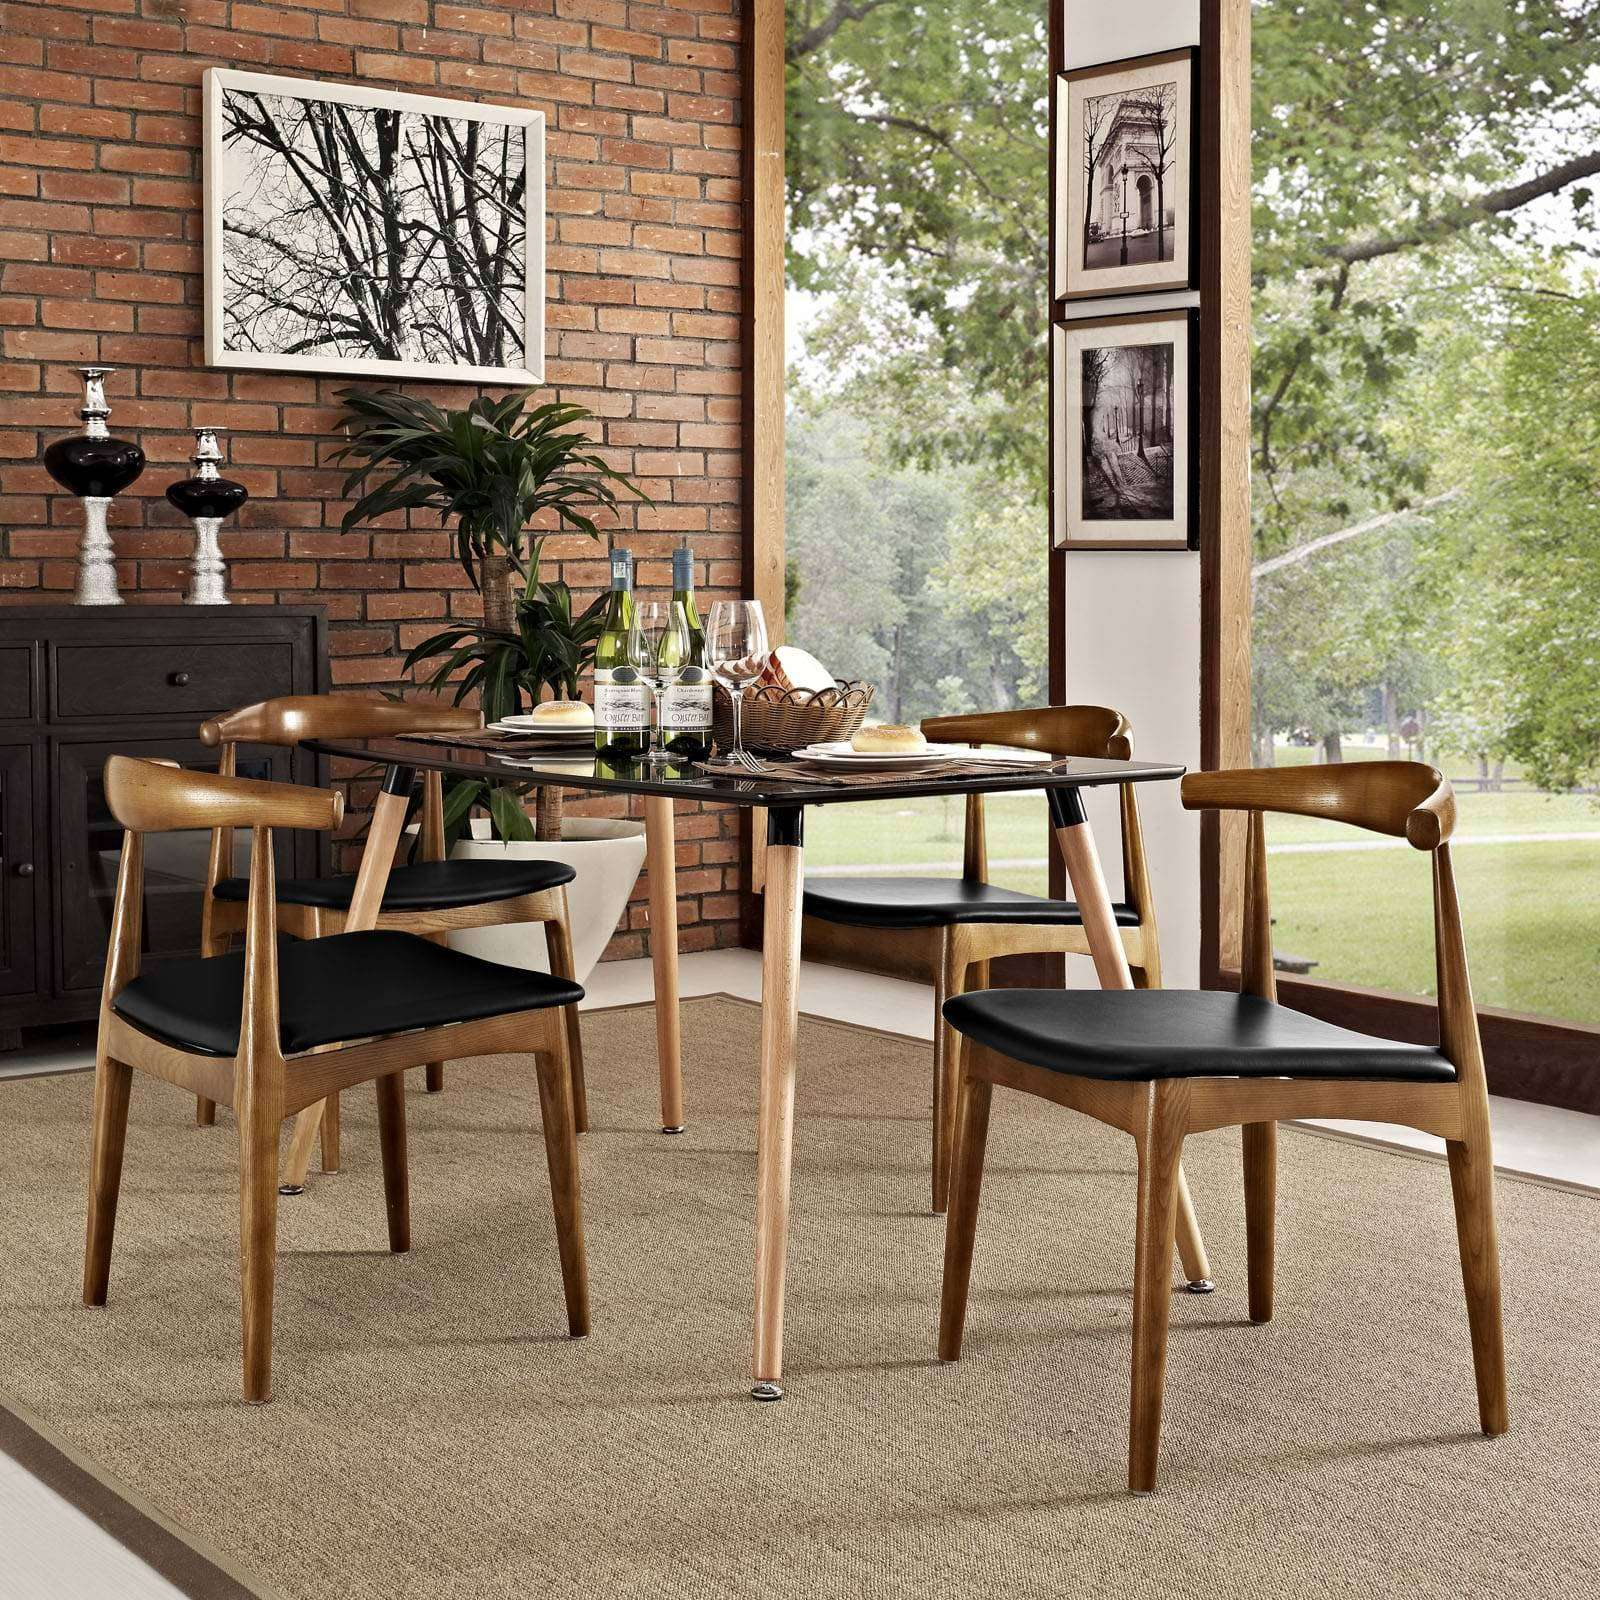 4 Chairs In Dining Room: Modterior :: Dining Room :: Dining Sets :: Tracy Dining